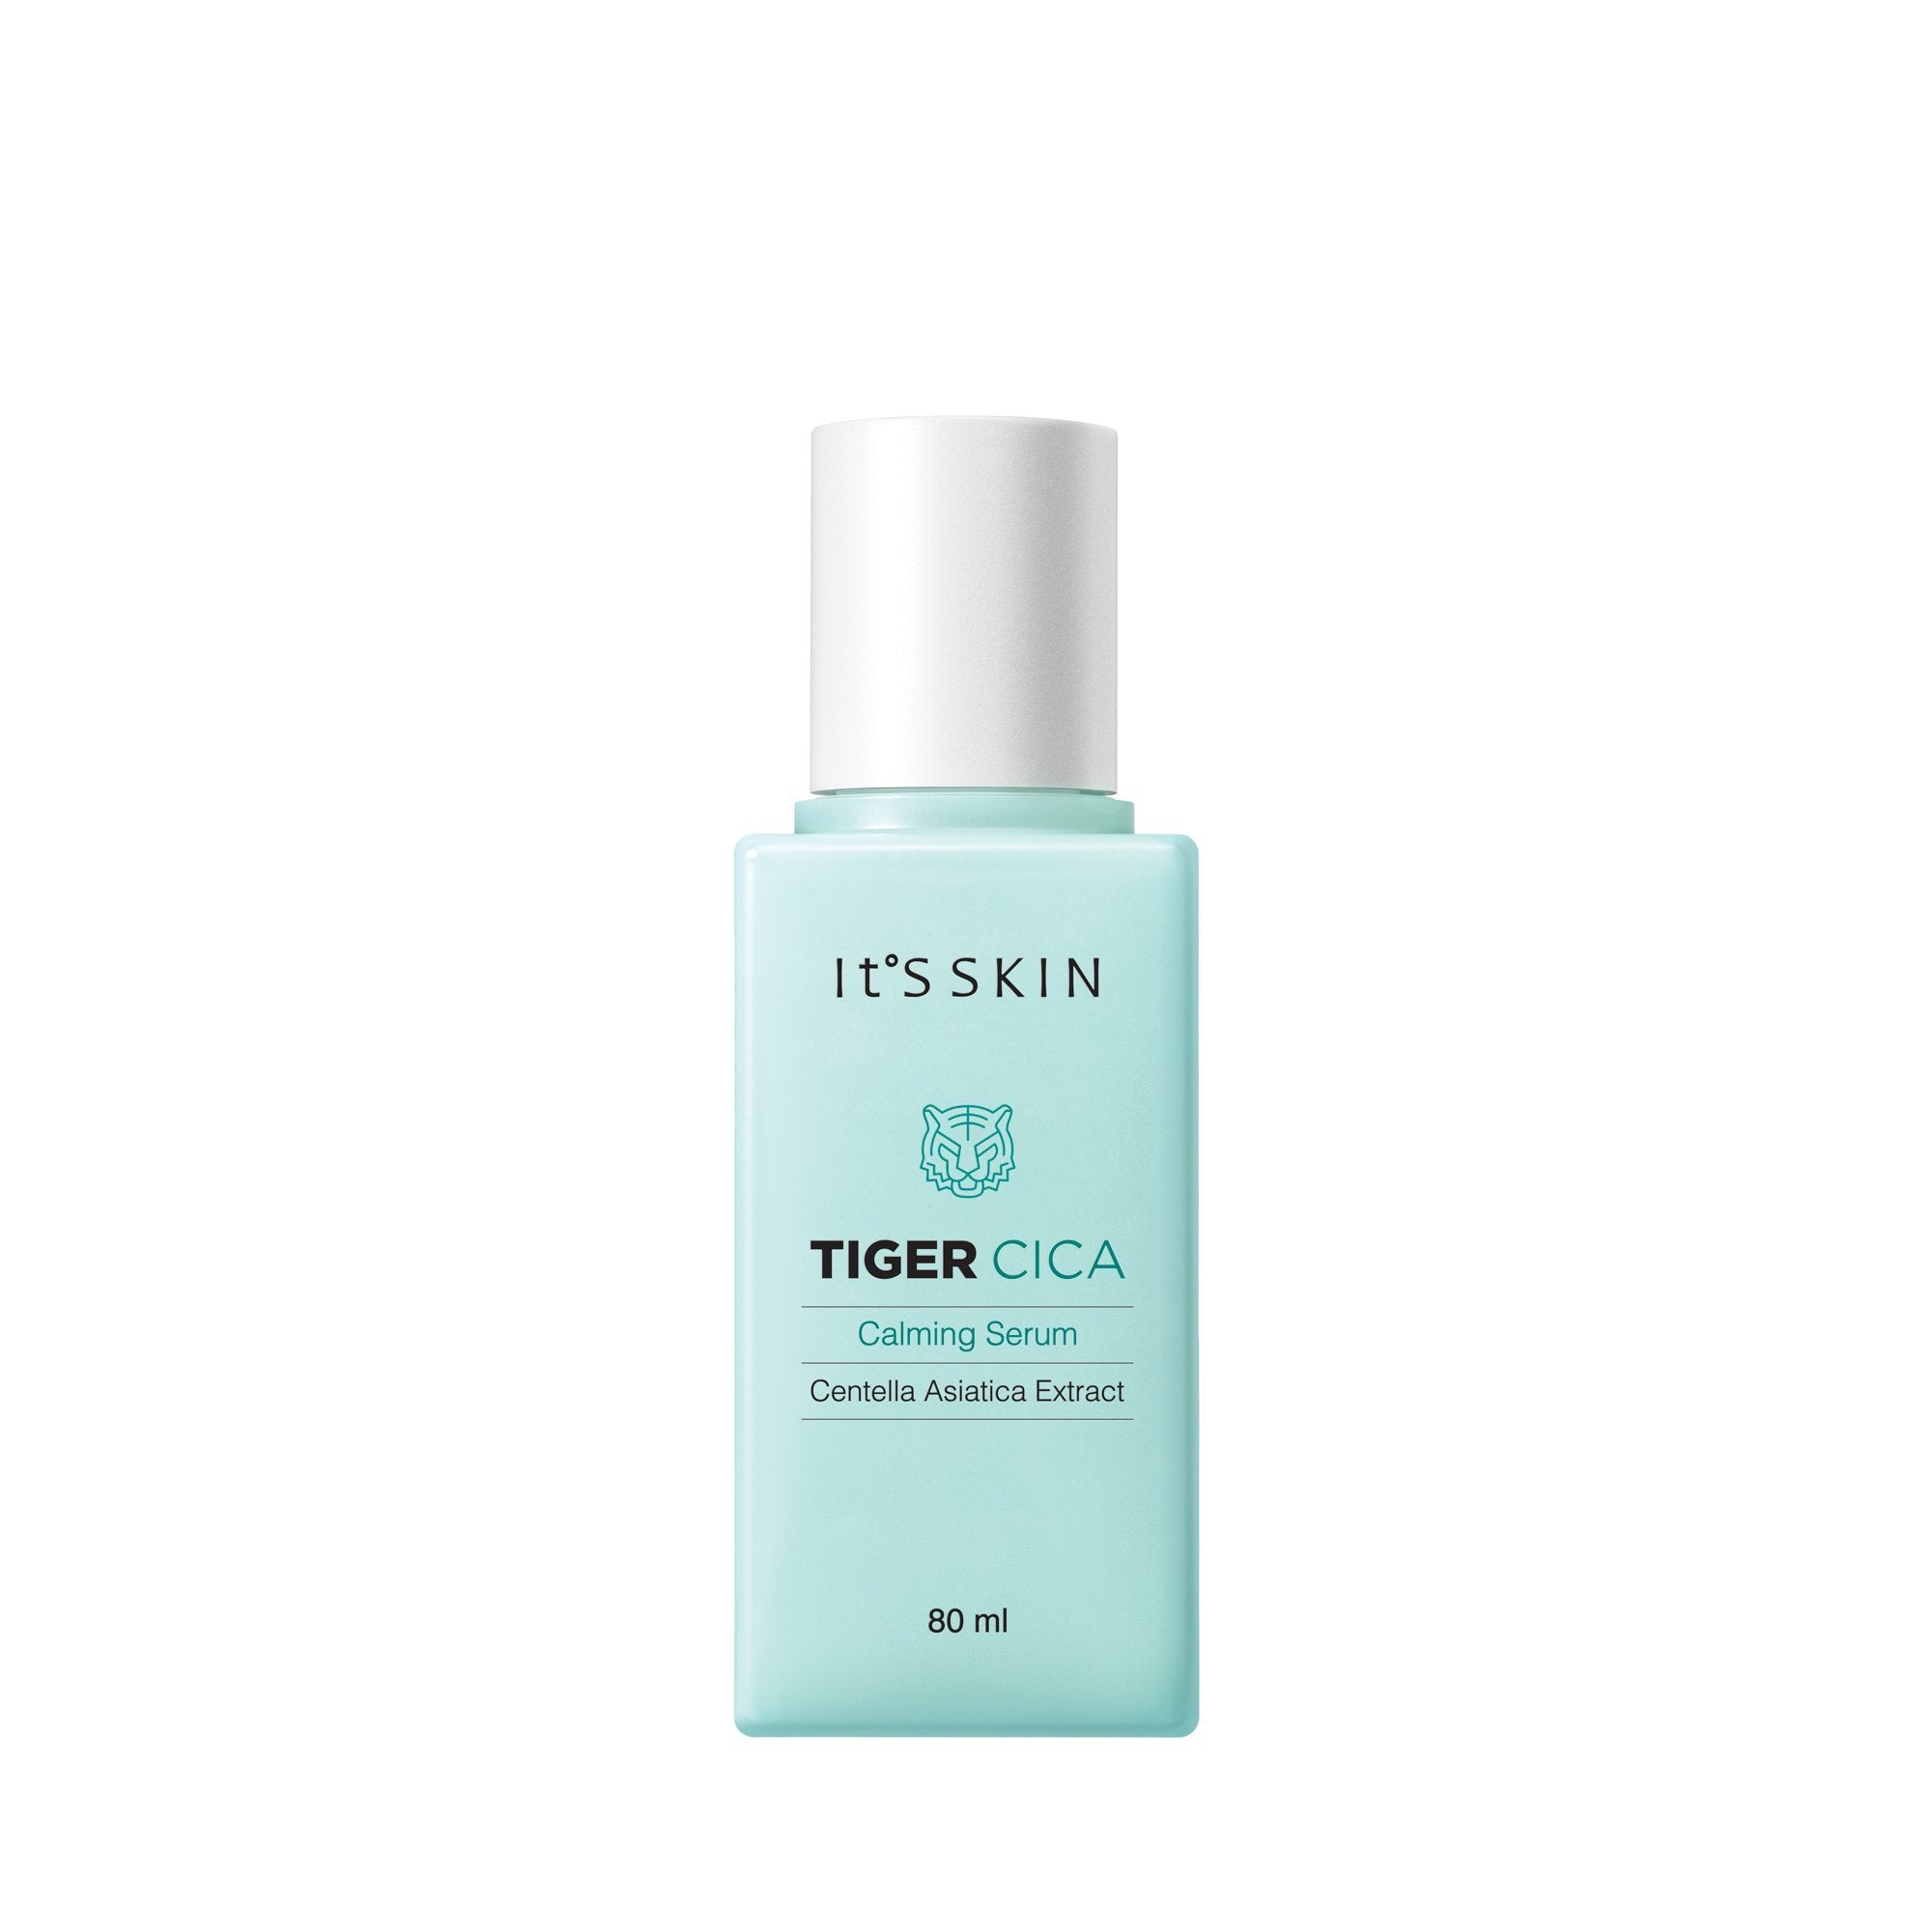 Health & Beauty > Personal Care > Cosmetics > Skin Care > Lotion & Moisturizer - Tiger Cica Calming Serum Do Twarzy 80 Ml